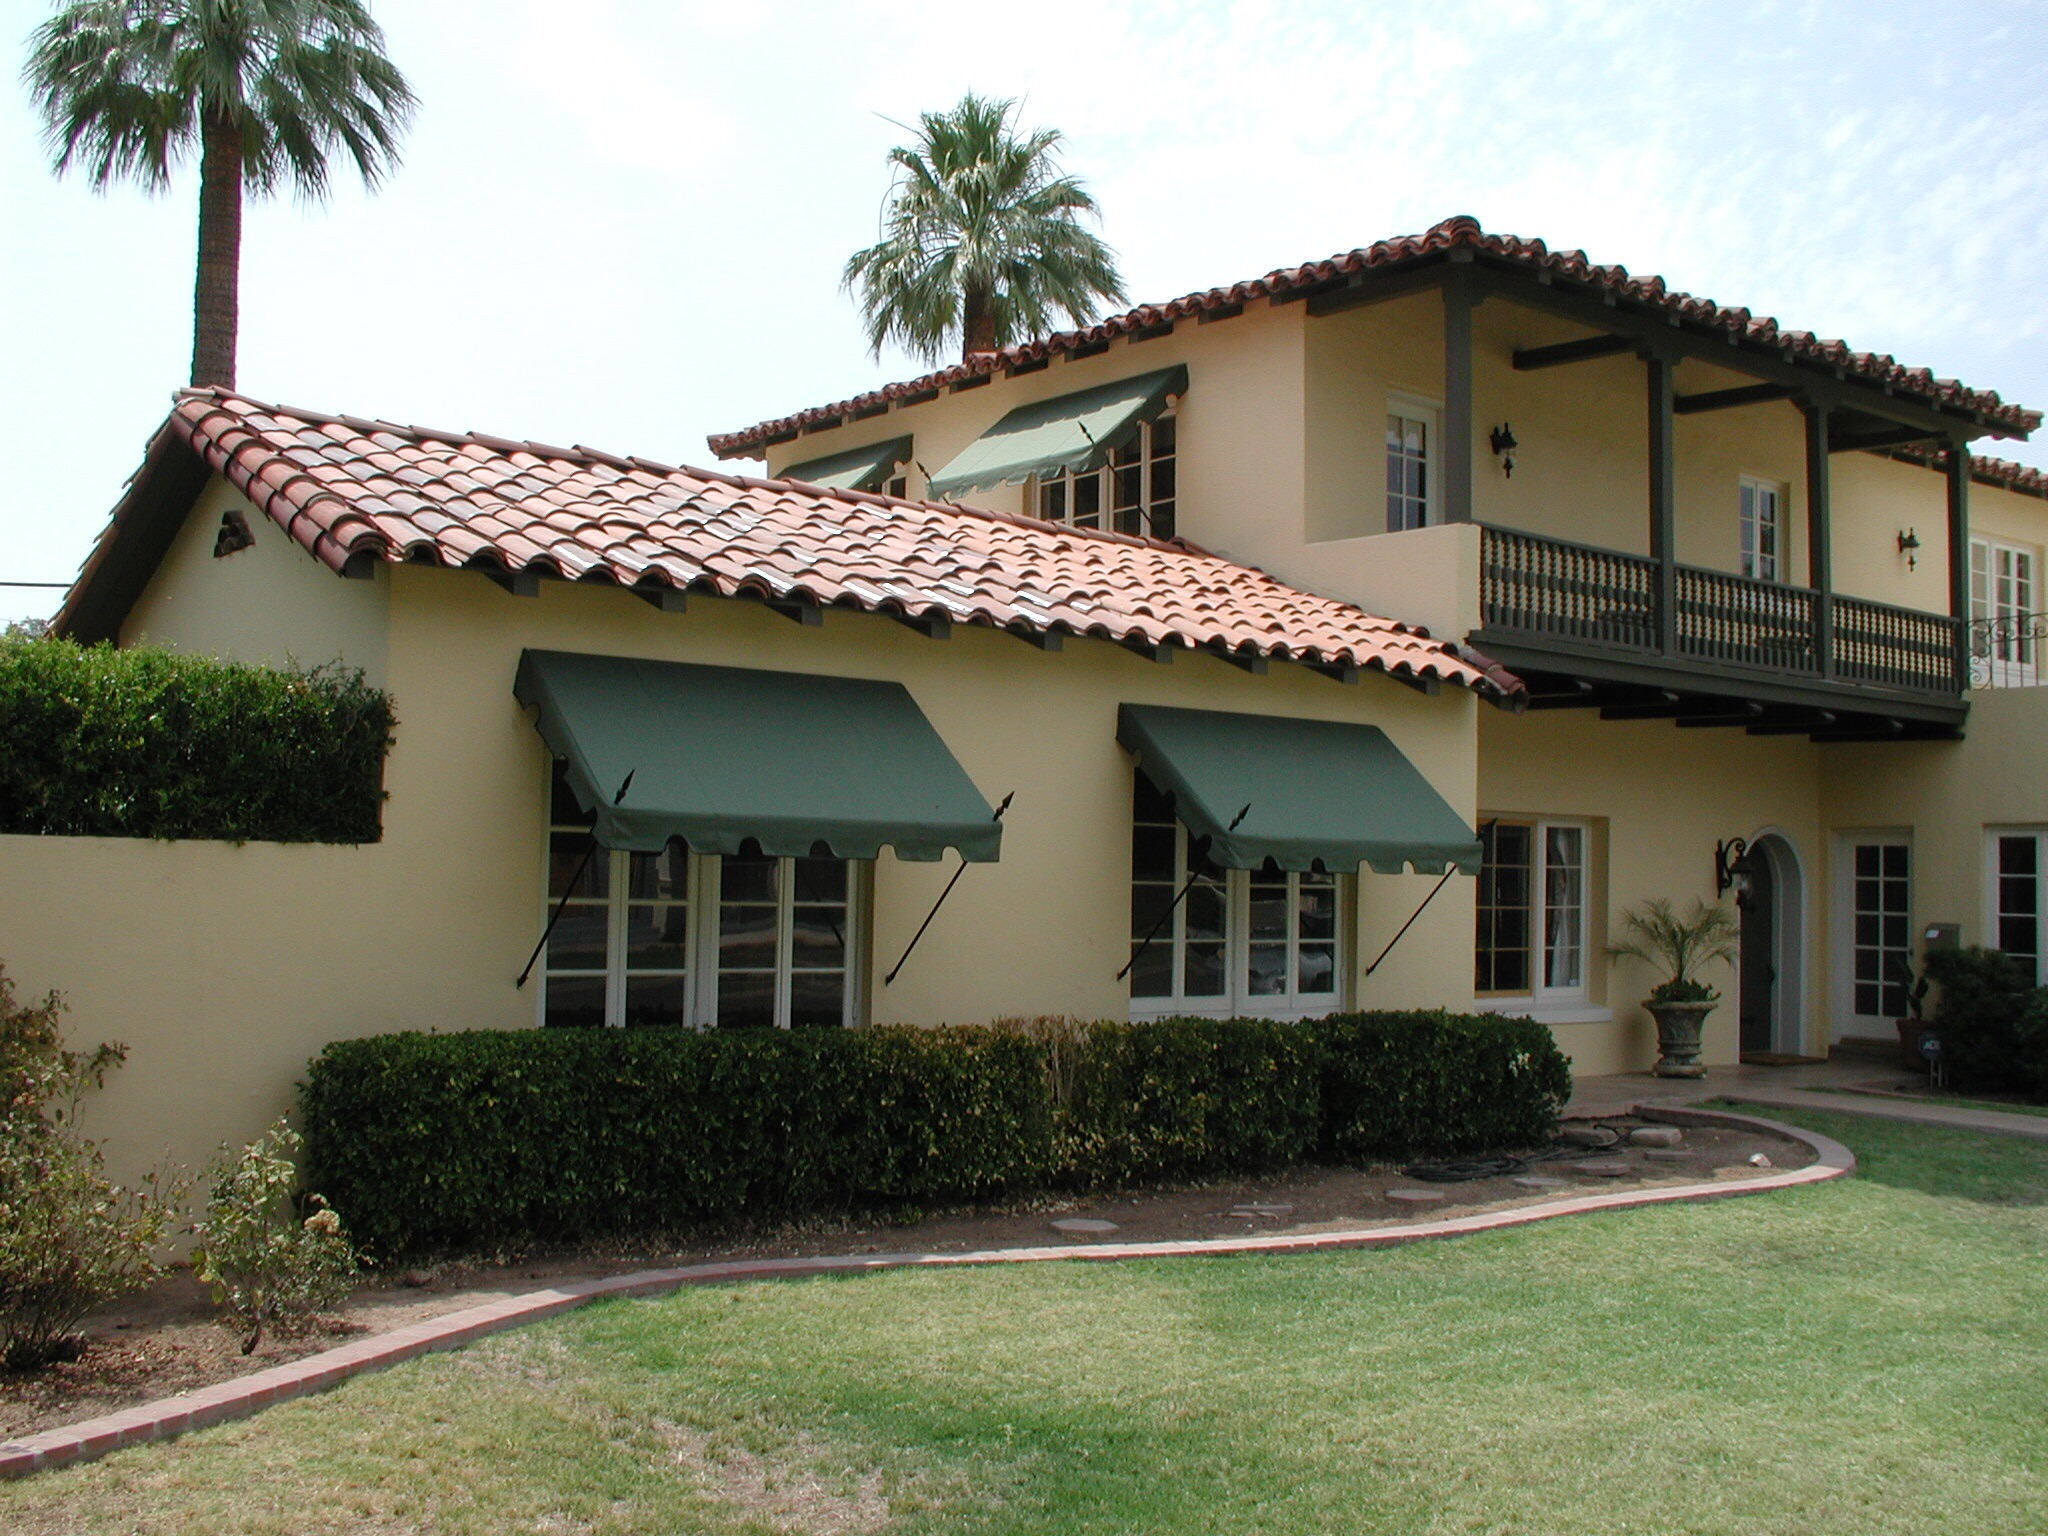 Spear Point Awnings - Phoenix Tent and Awning Company